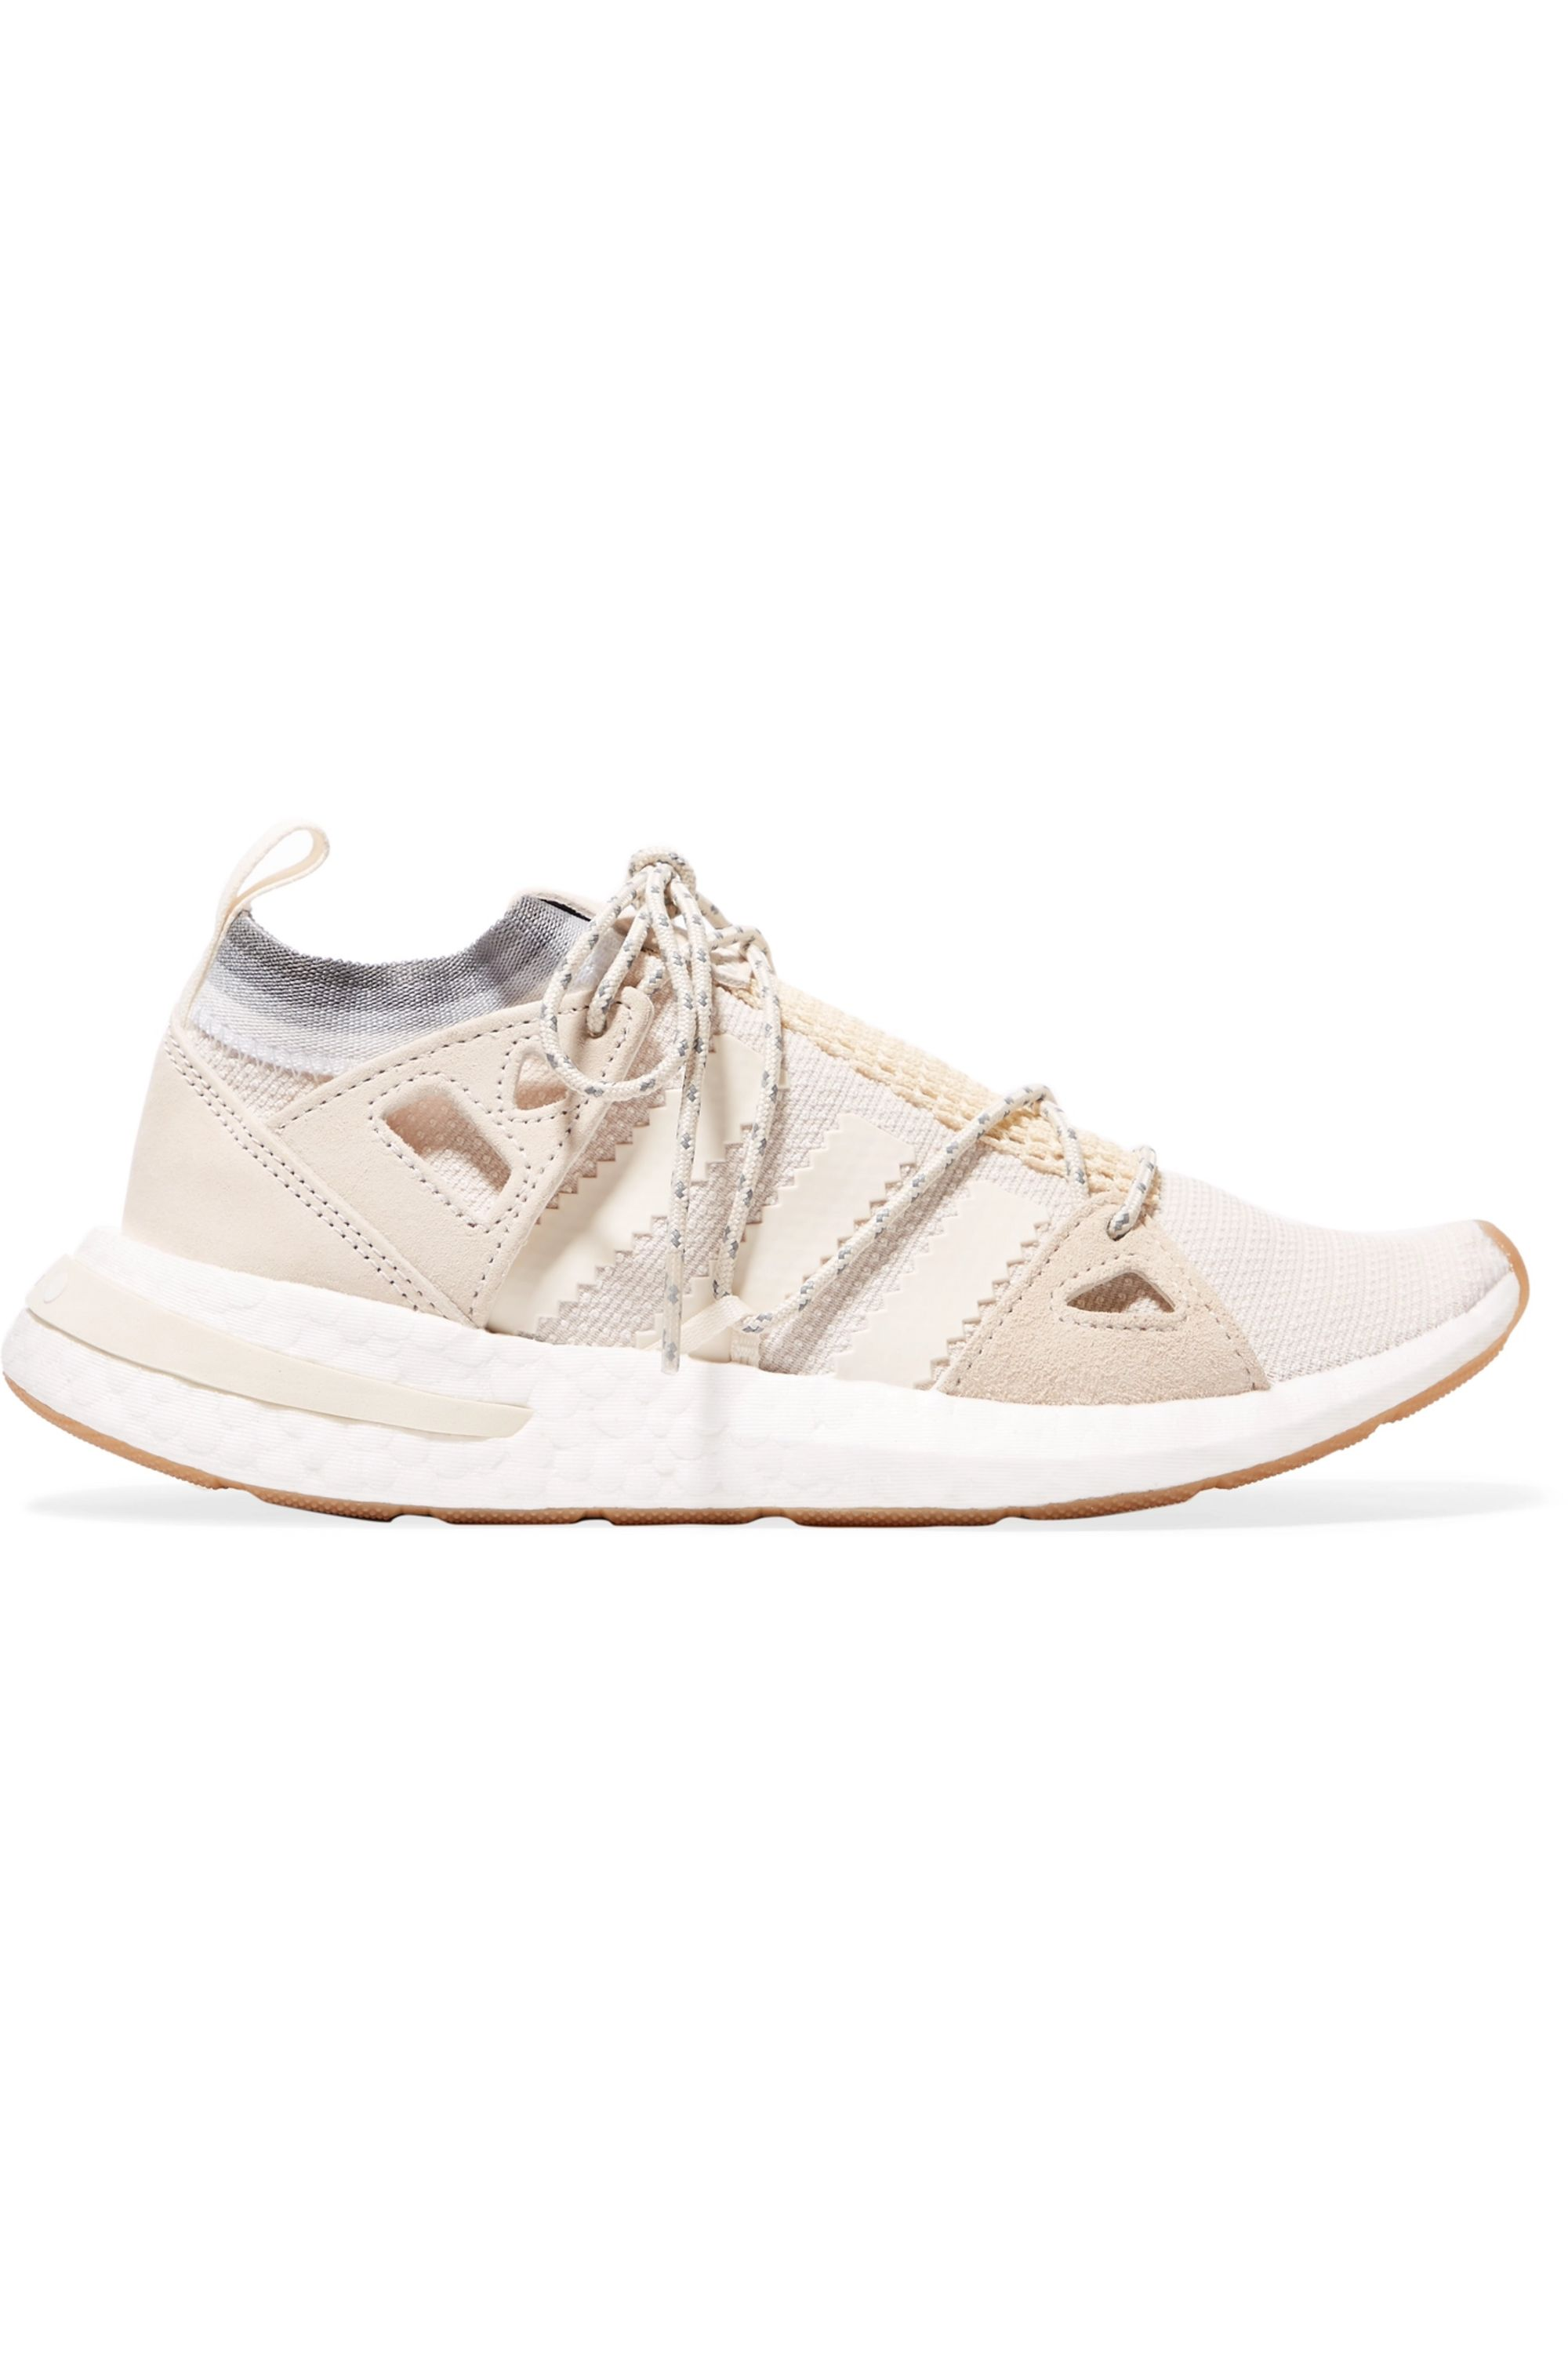 White Arkyn suede-trimmed mesh sneakers